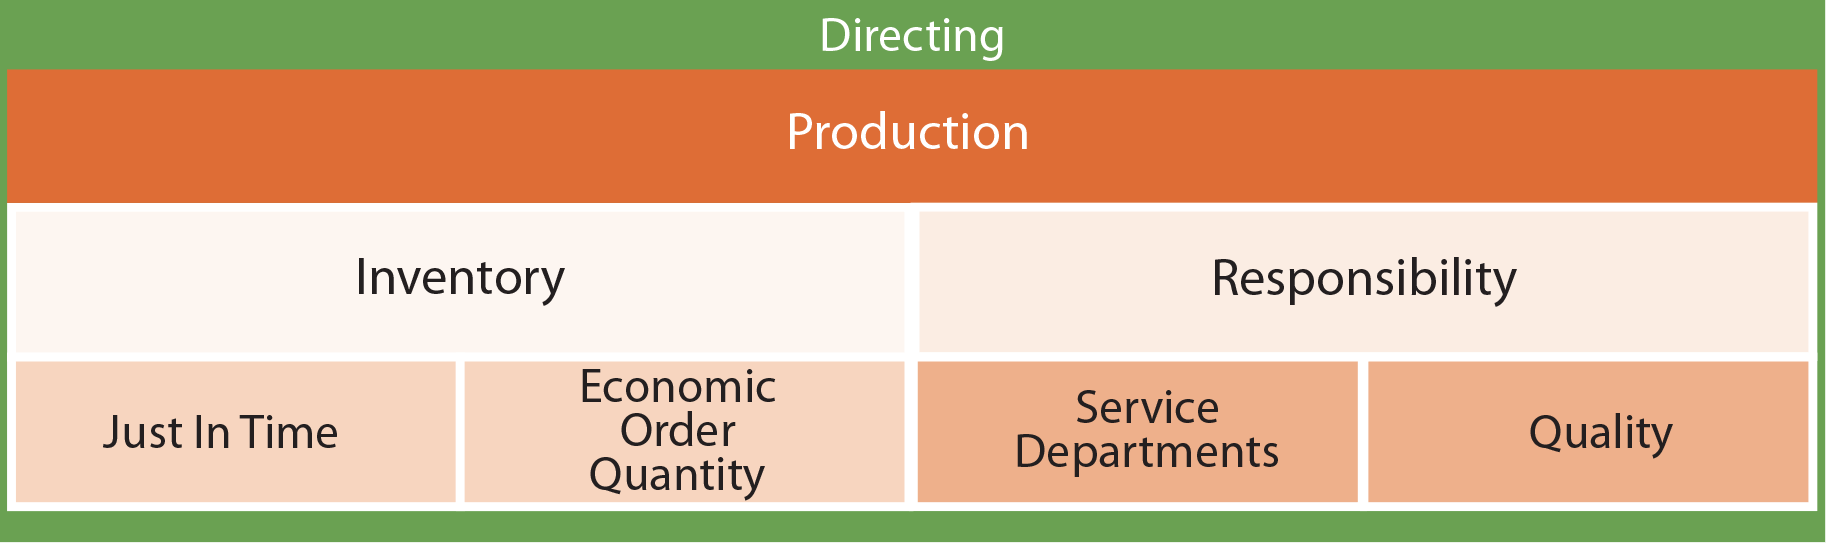 Managerial Accounting Functions - Production chart